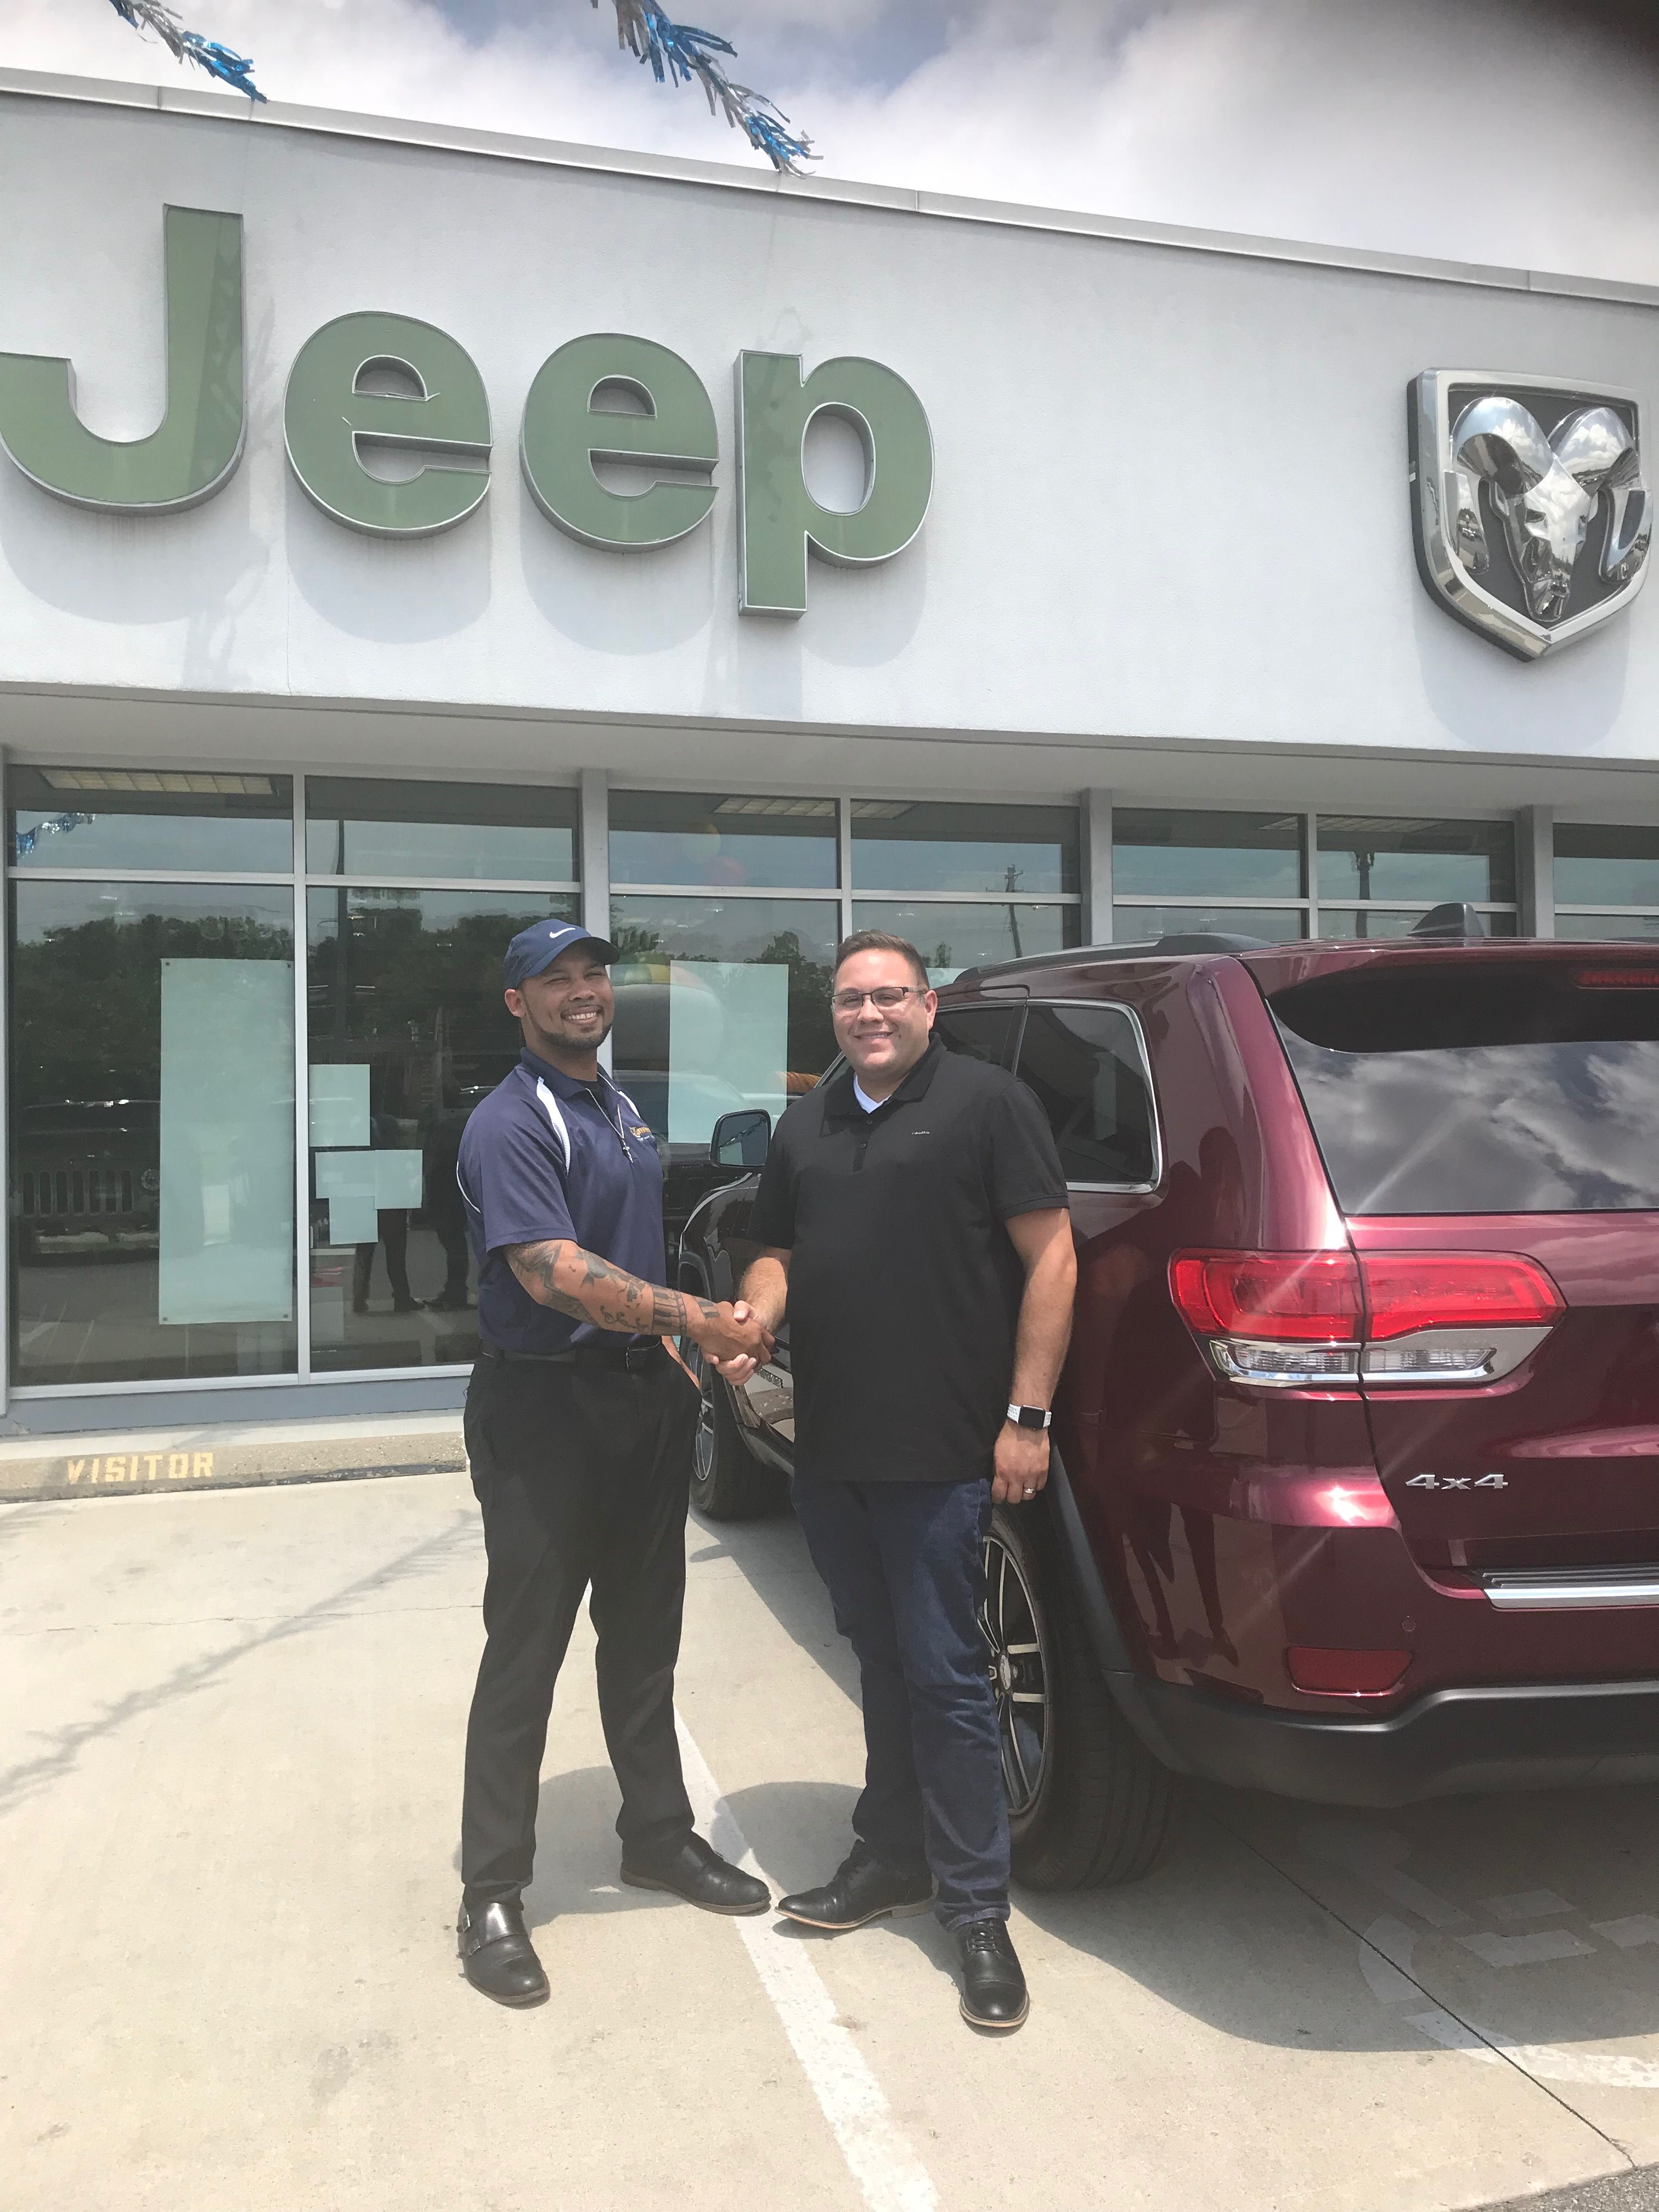 Brandon Willoughby Just Joined The Jeep Team He Came In And Spoke